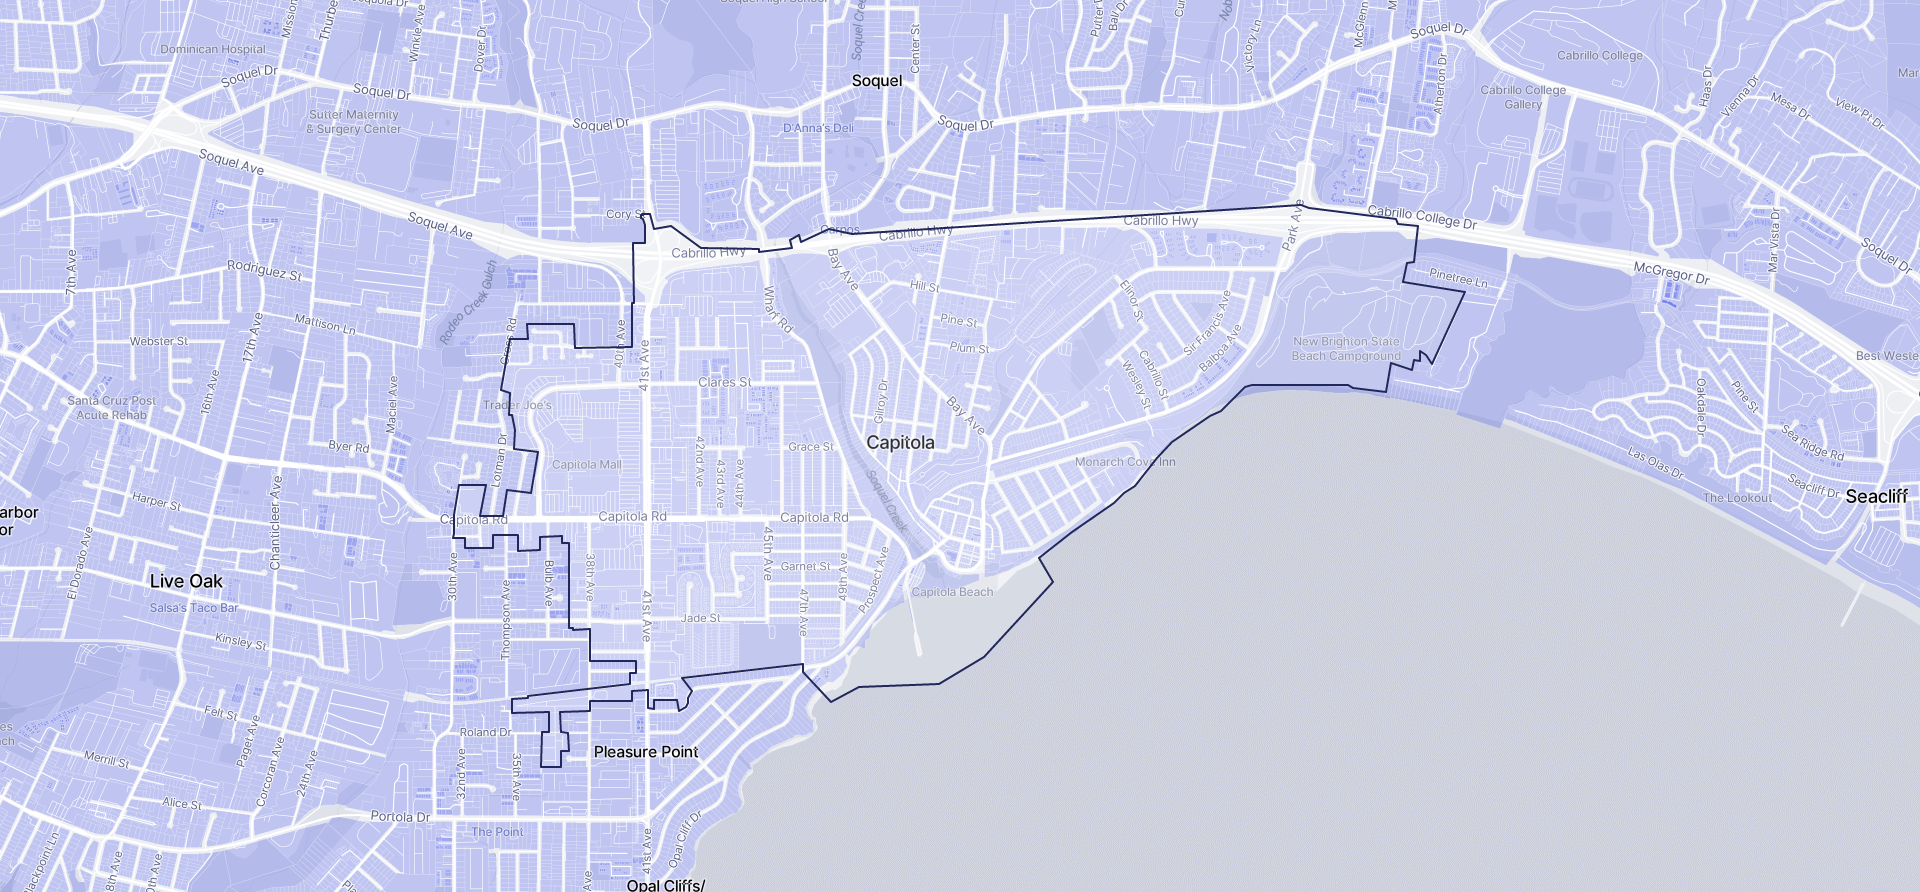 Image of Capitola boundaries on a map.